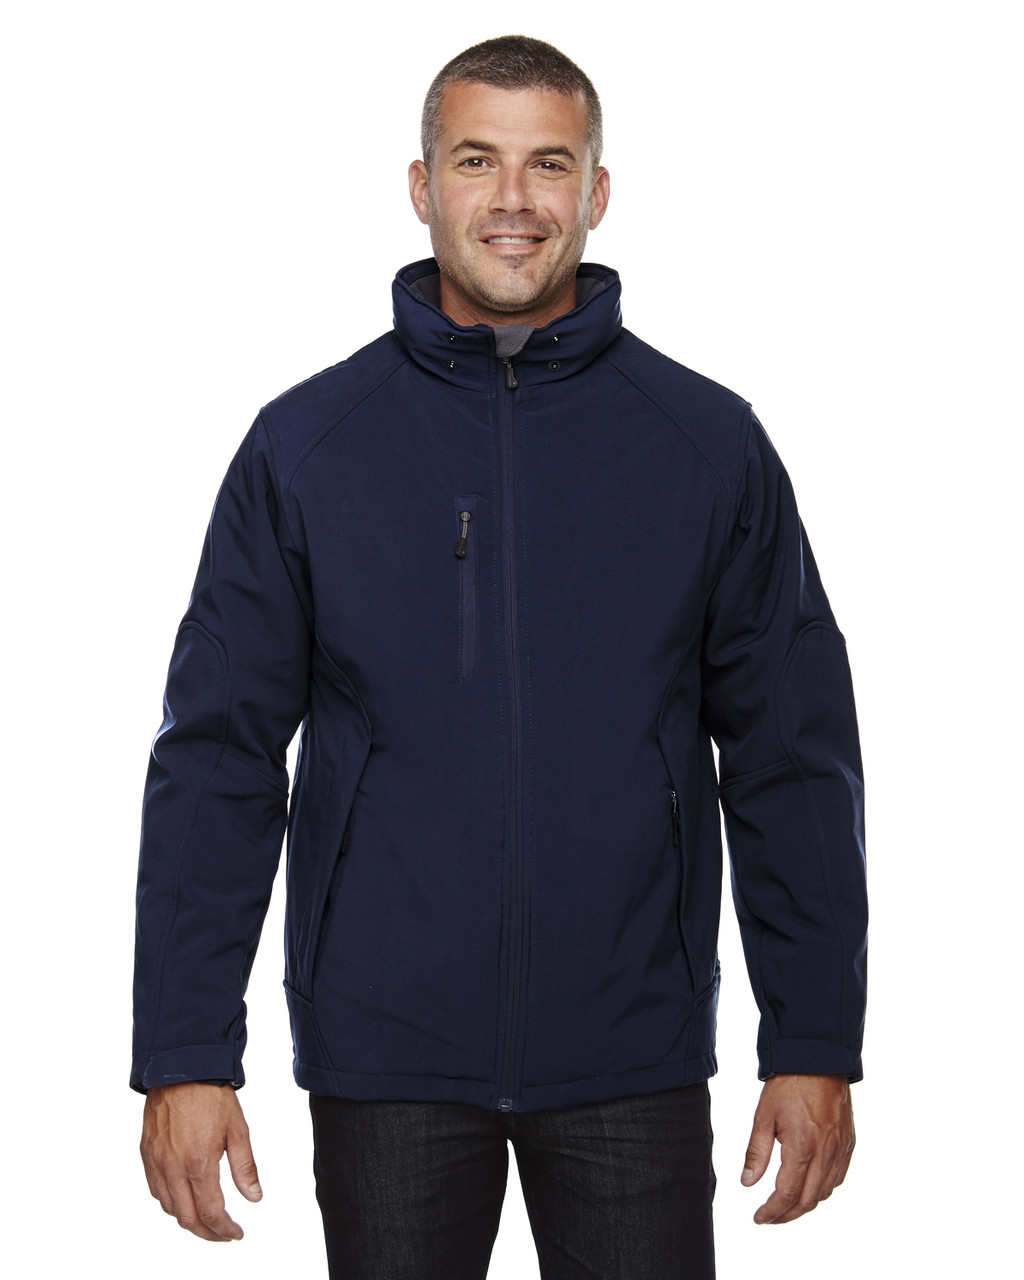 Classic Navy - 88159 North End Men's Insulated Soft Shell Jacket With Detachable Hood   Blankclothing.ca